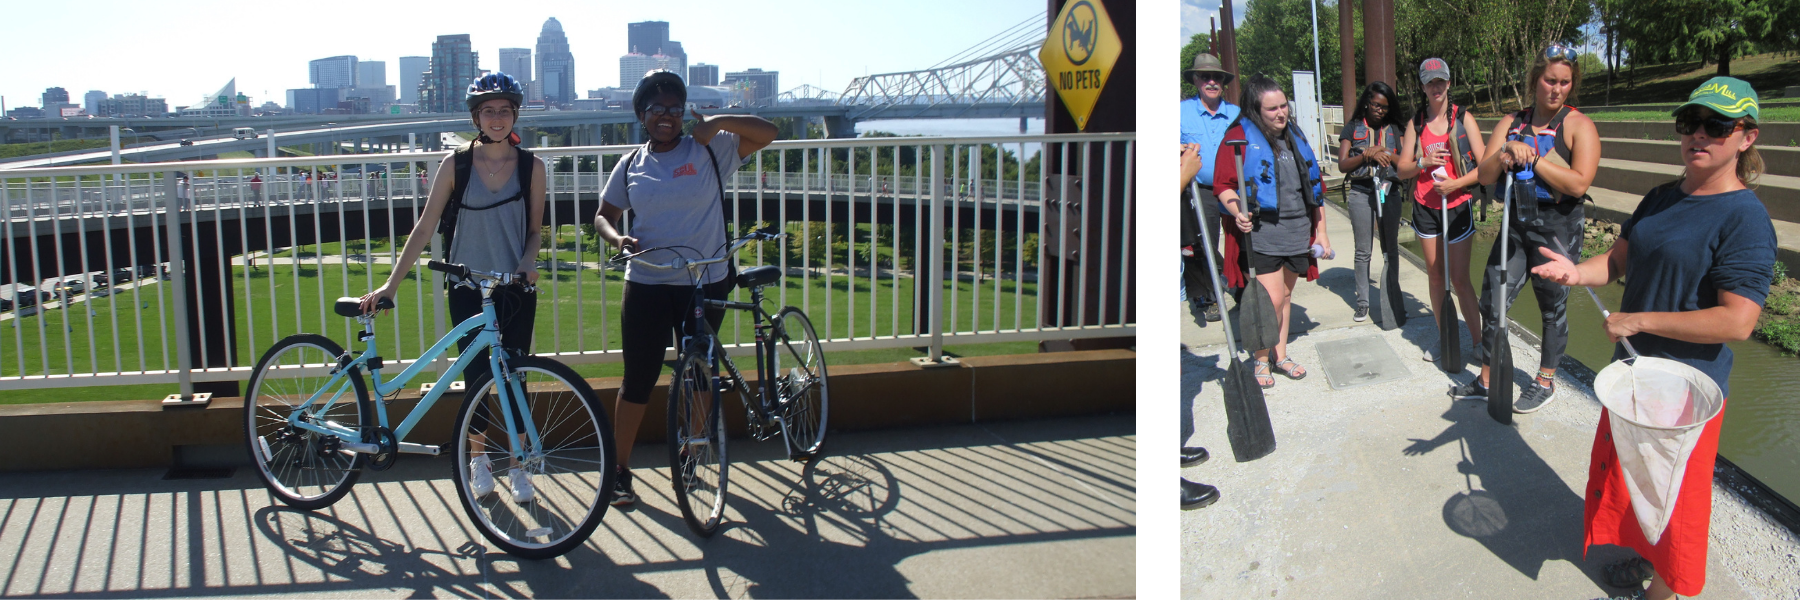 students smiling with bikes on pedestrian bridge in Louisville. Students learning about water and marine biology on trip in Louisville.